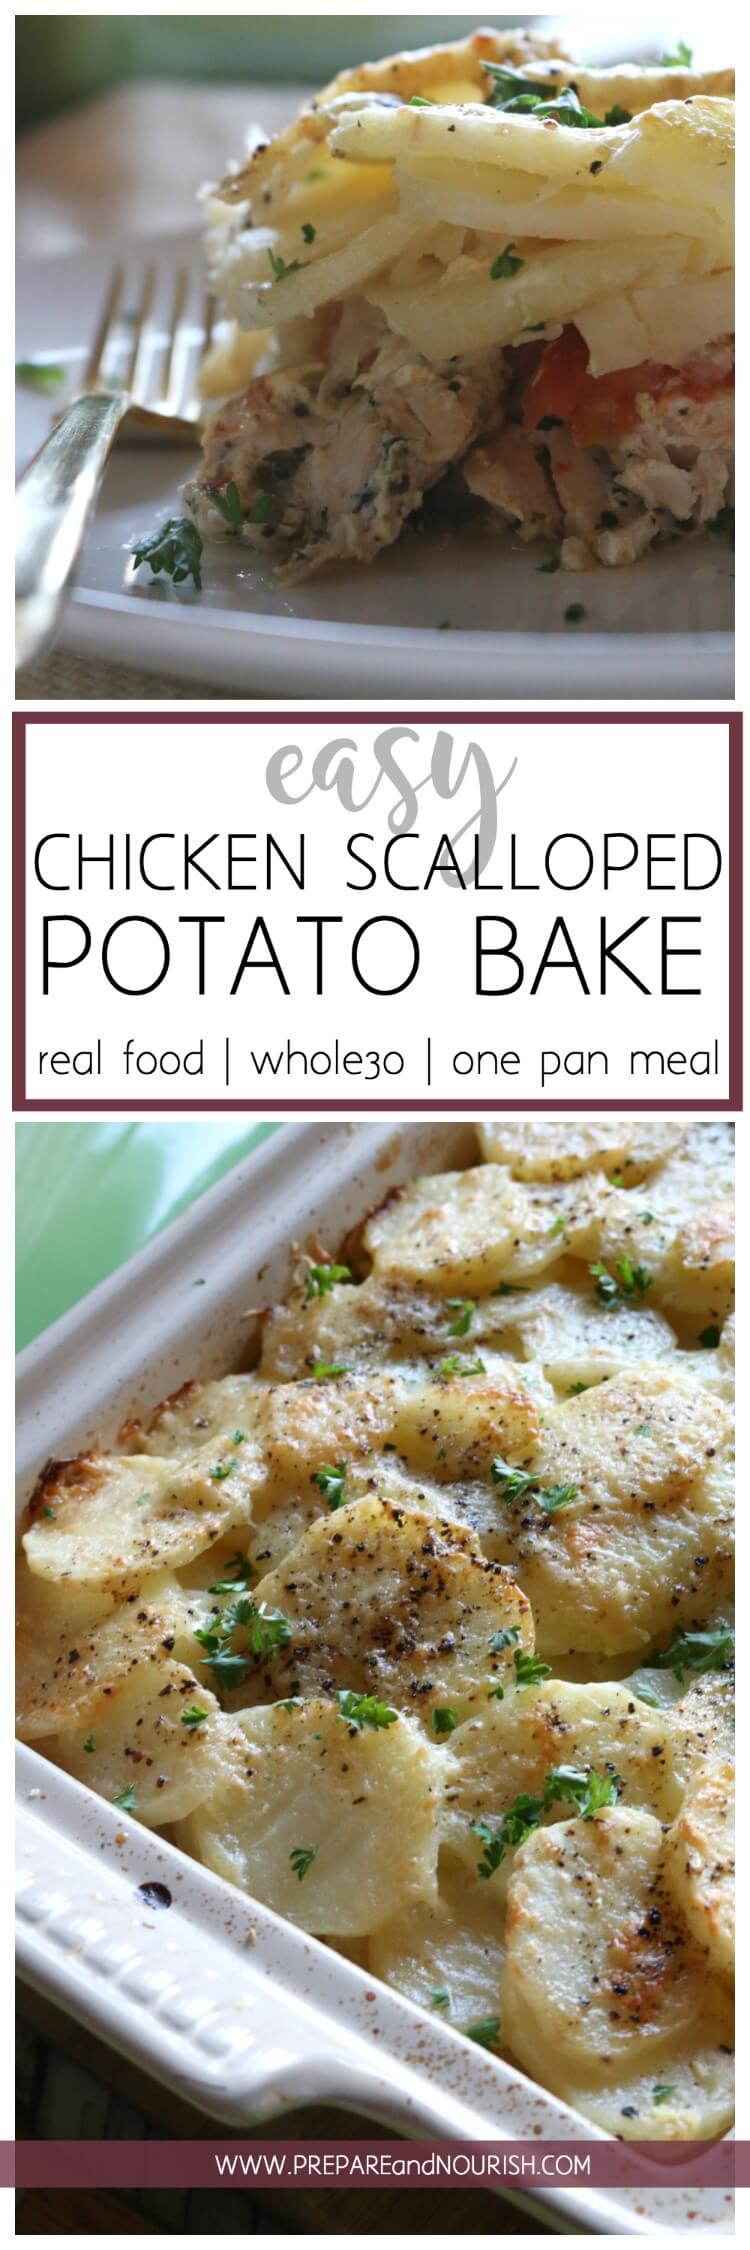 5 Ingredient Easy Chicken Scalloped Potato Bake - easy and complete dinner in one pan and baked to perfection! #whole30 #onepan